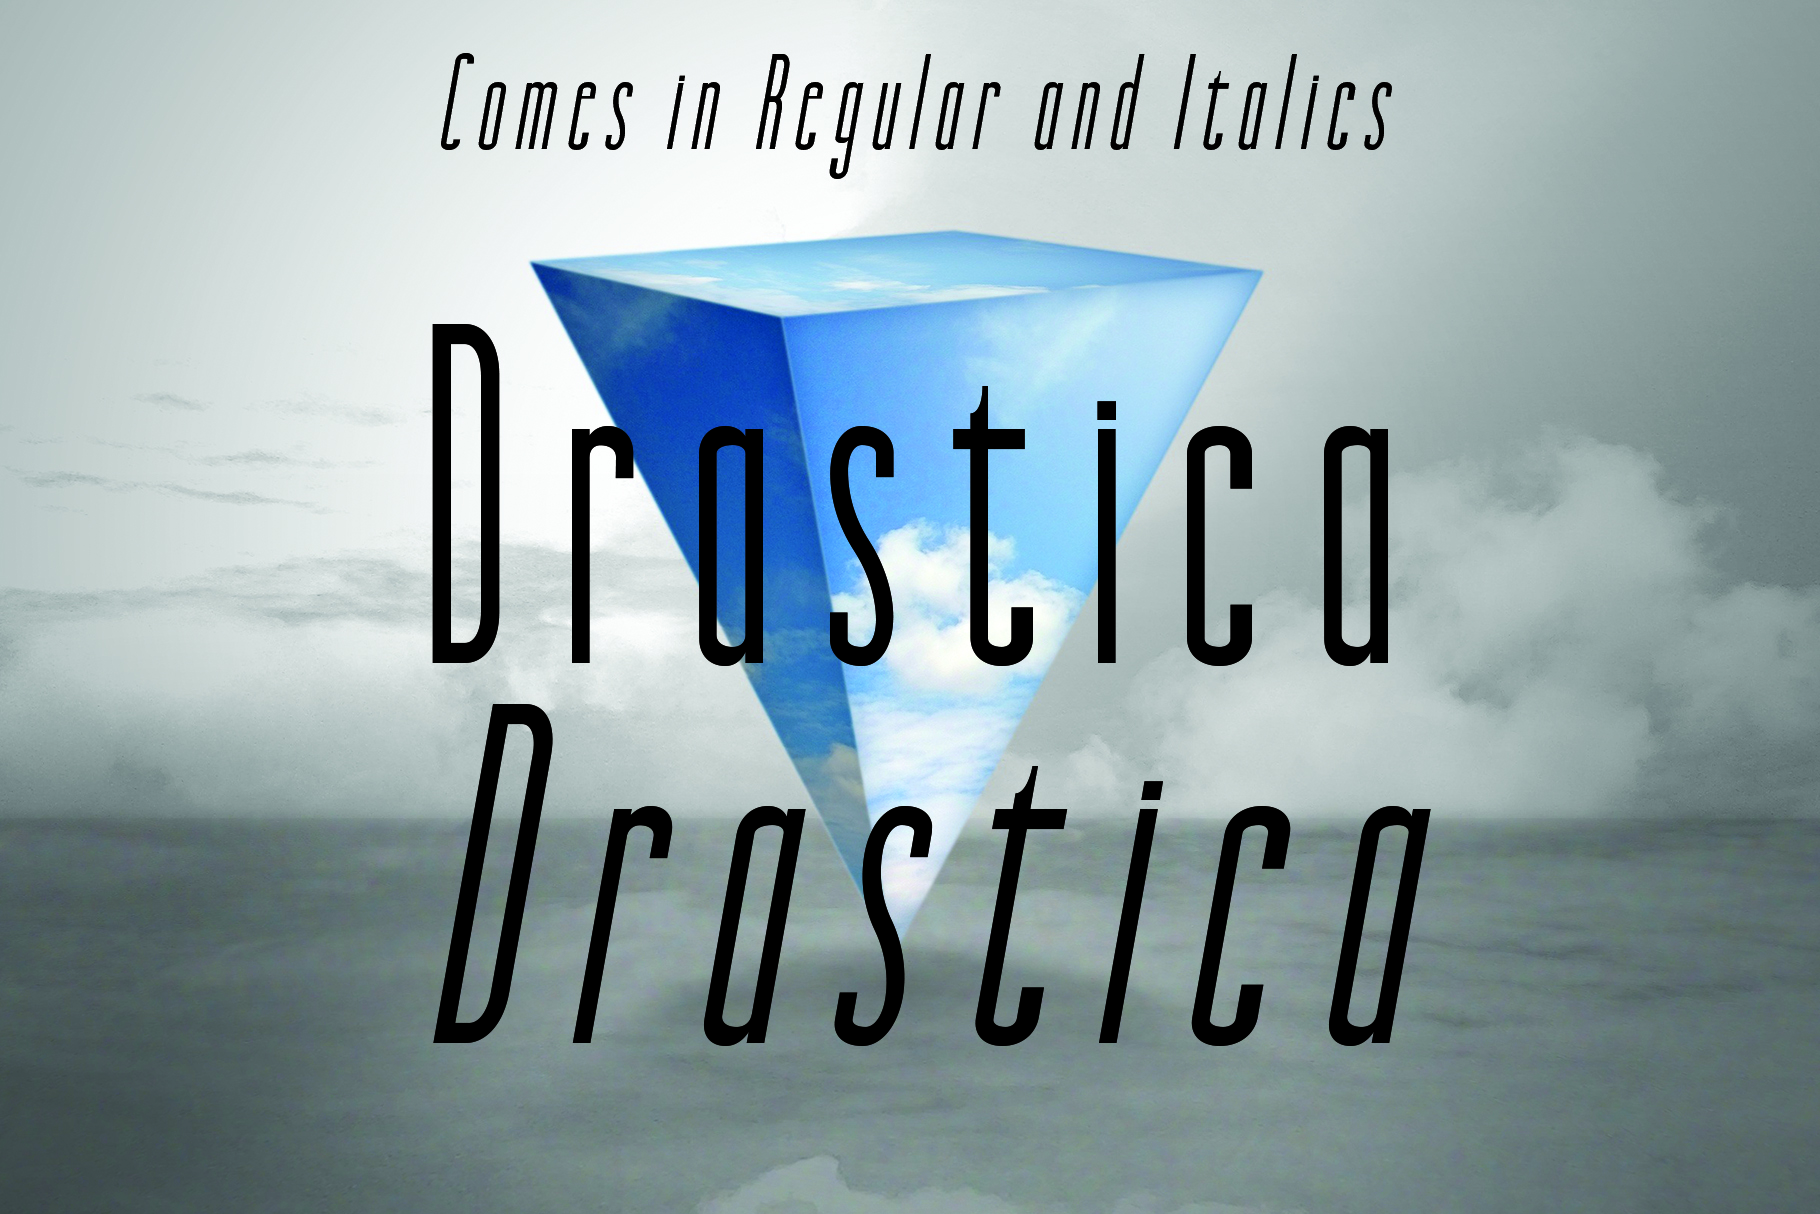 DRASTICA, A Modern Typeface example image 6